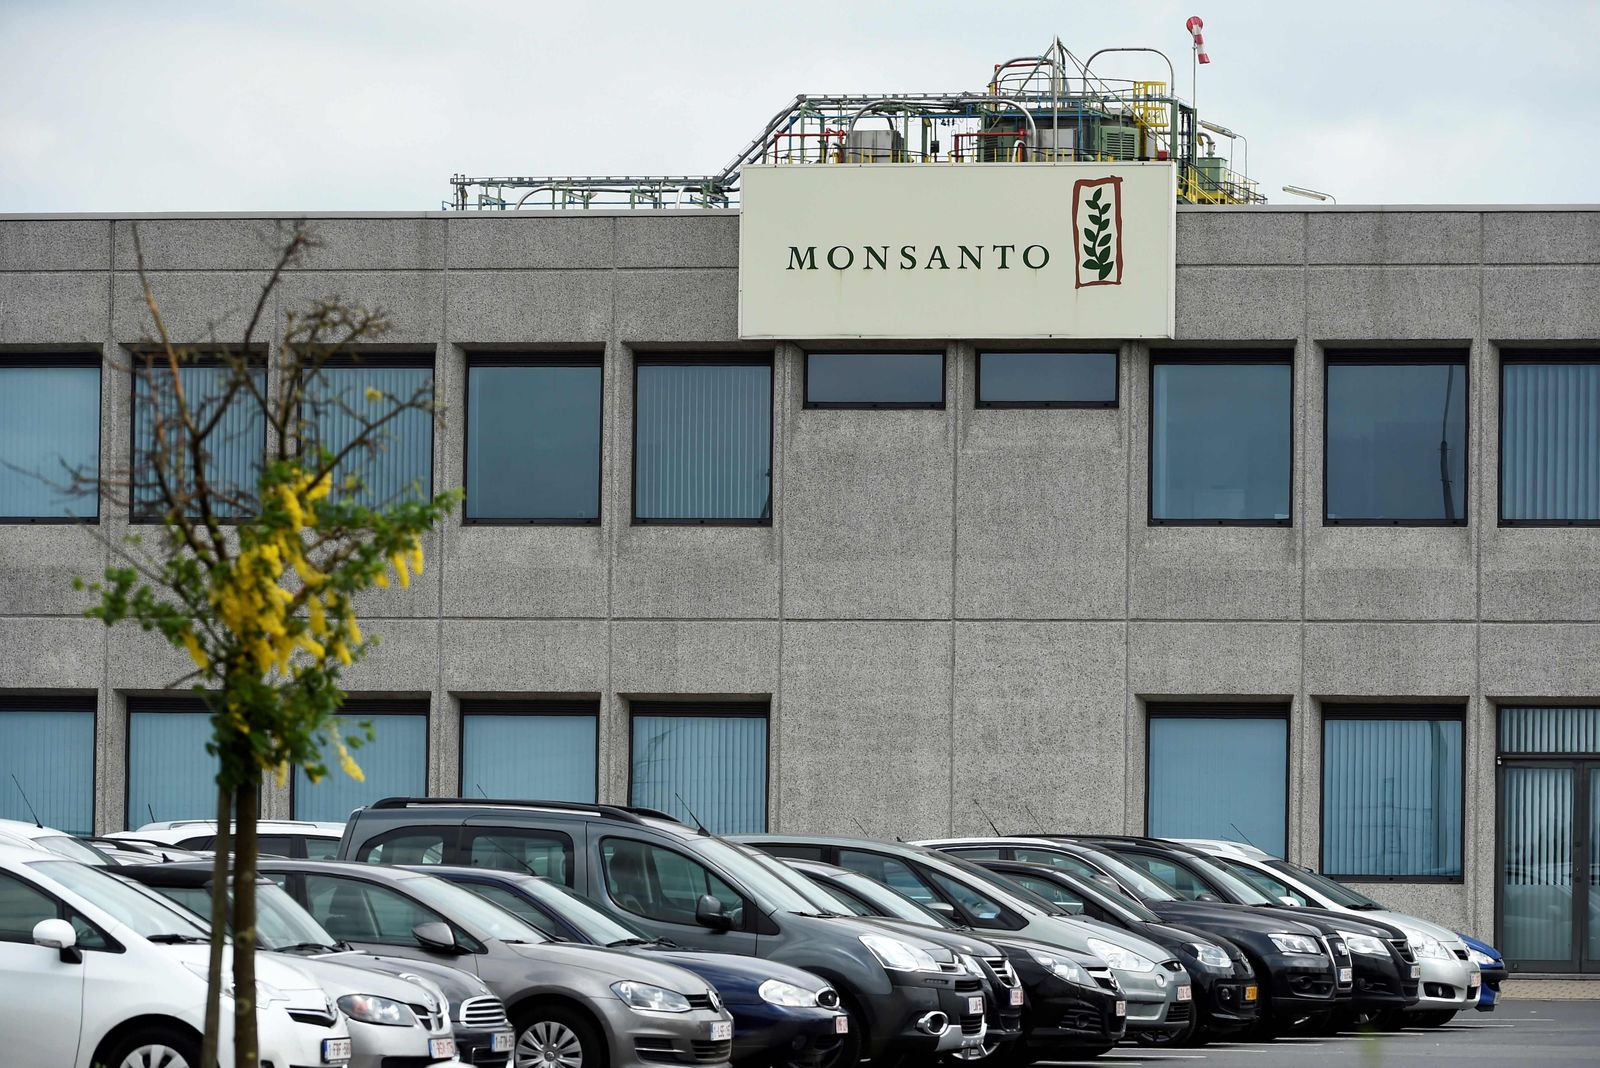 FILES-FRANCE-AGRICULTURE-HEALTH-TRIAL-MONSANTO